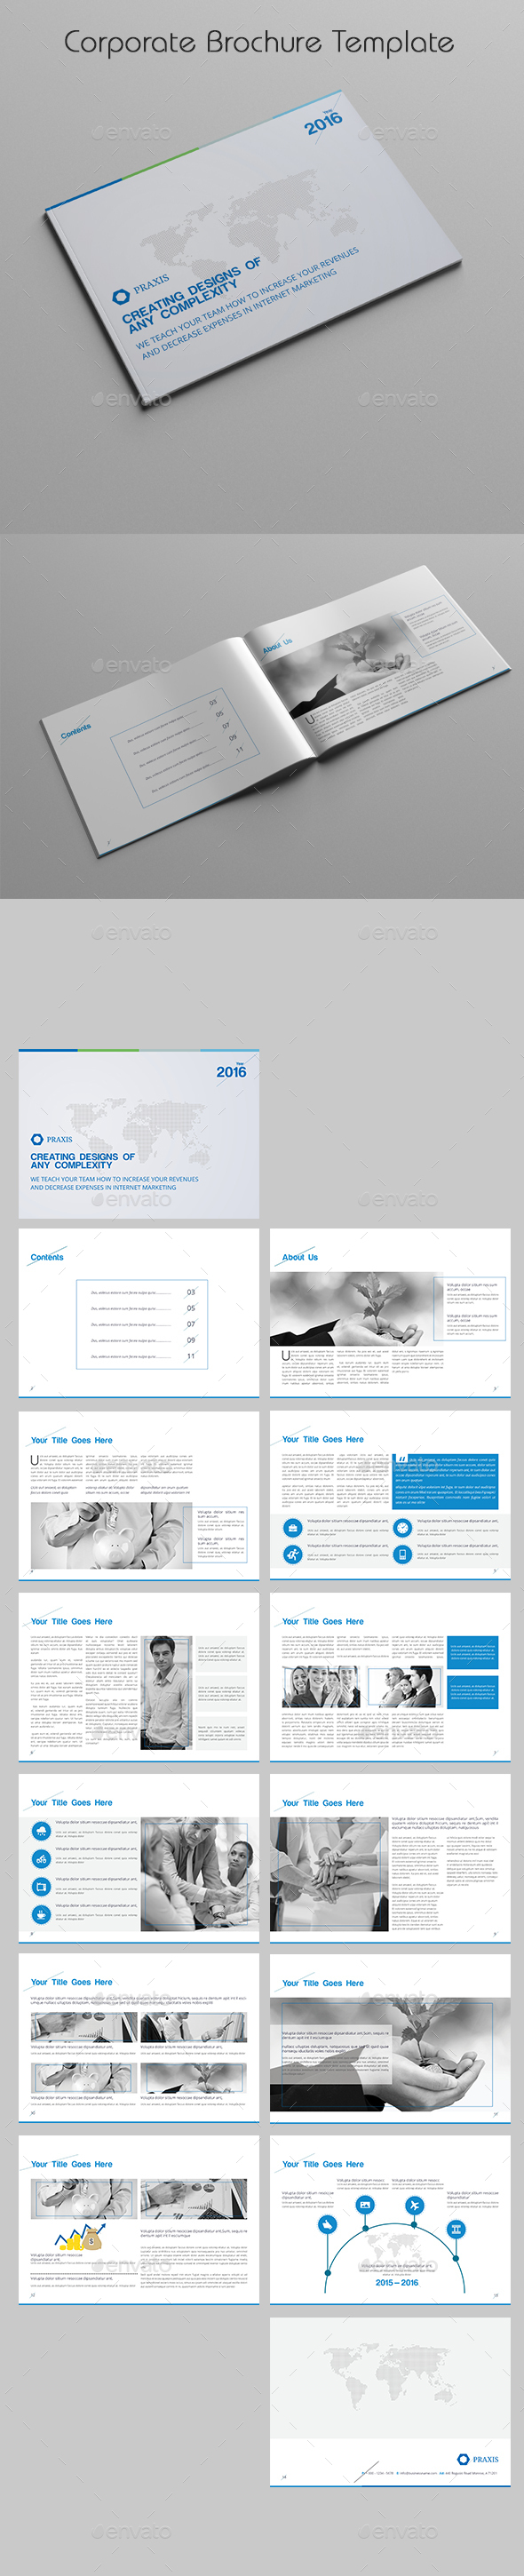 Corporate Brochure Template - Corporate Business Cards